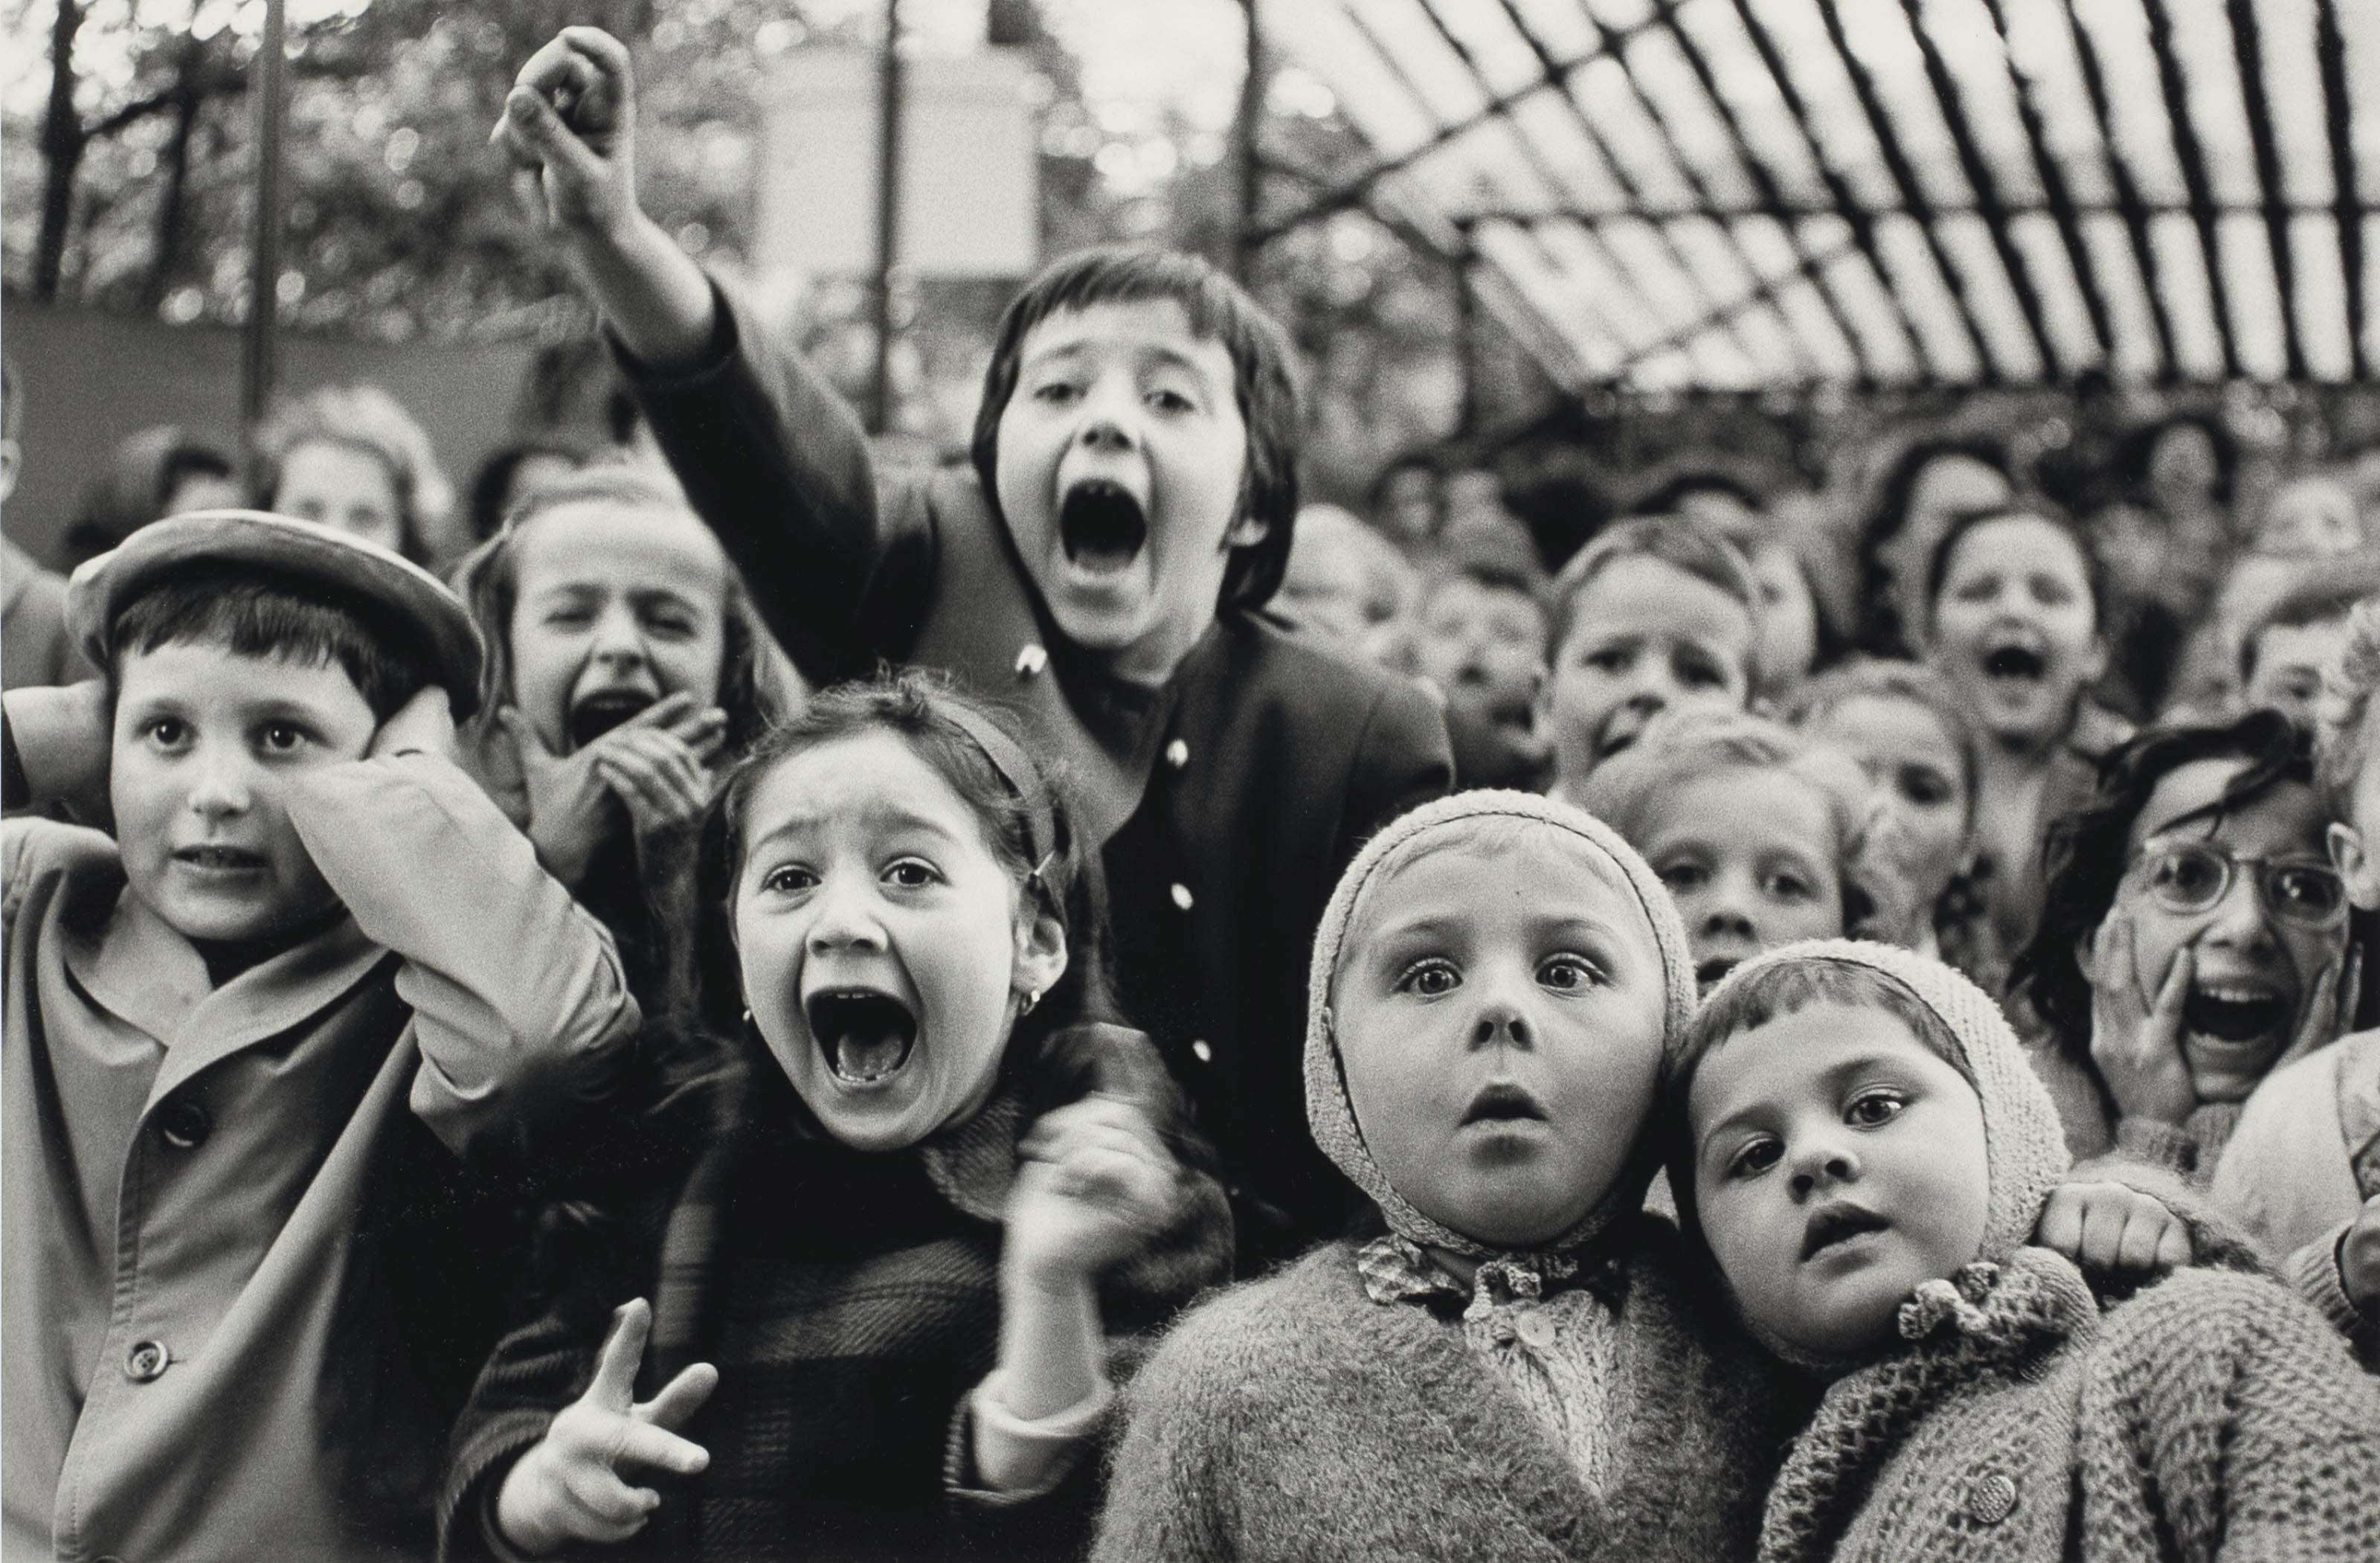 Children at a Puppet Theatre, Paris, 1933